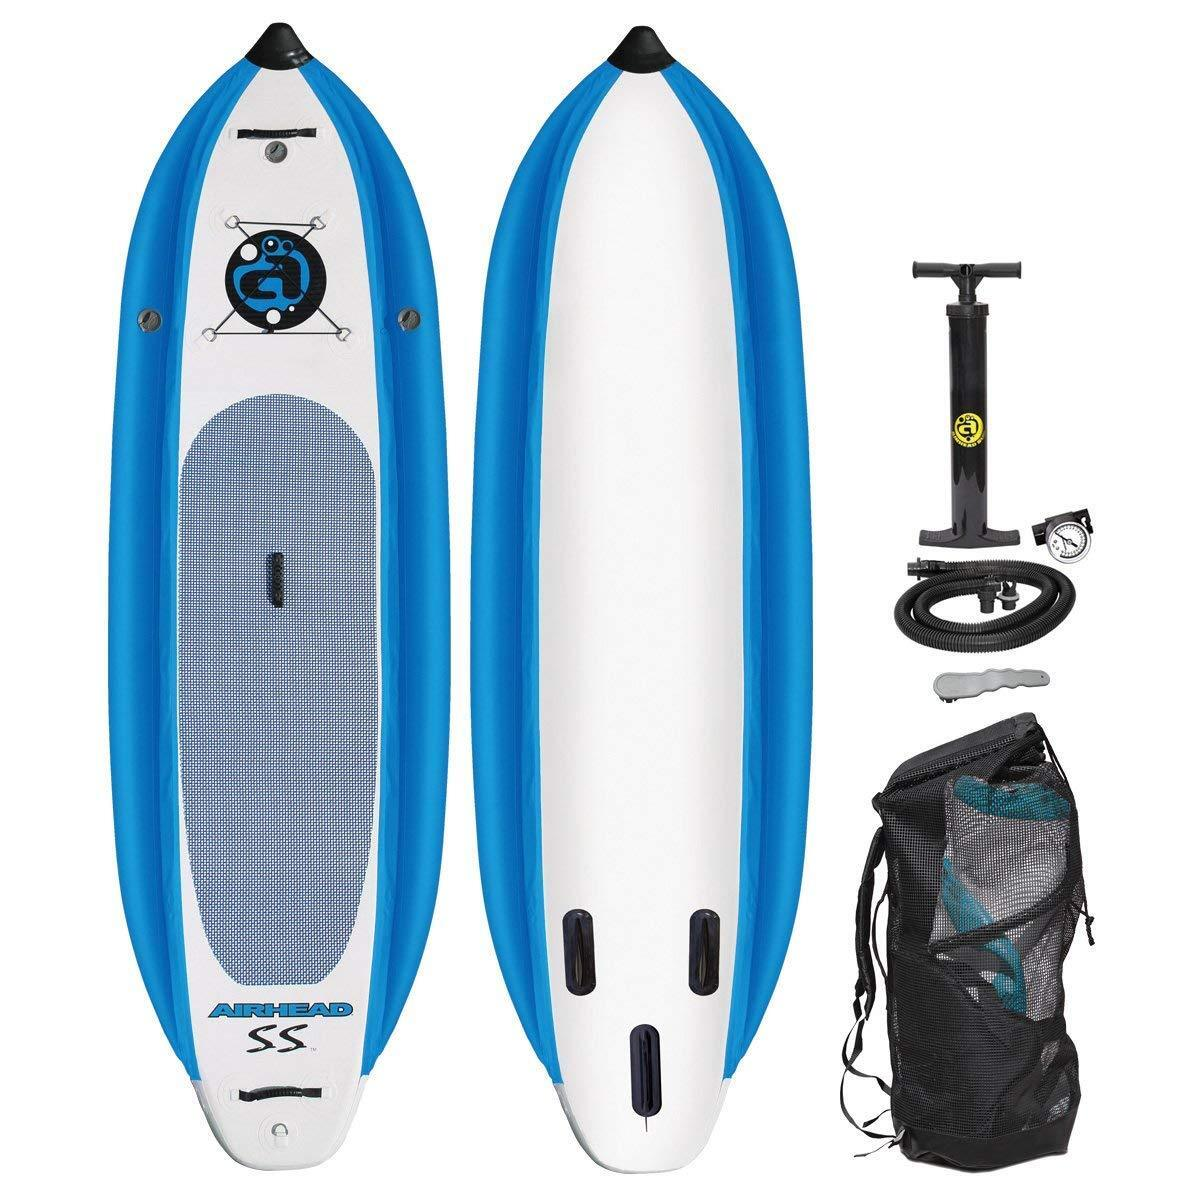 New AIRHEAD SS Super Sustainable Inflatable Paddle Board - S